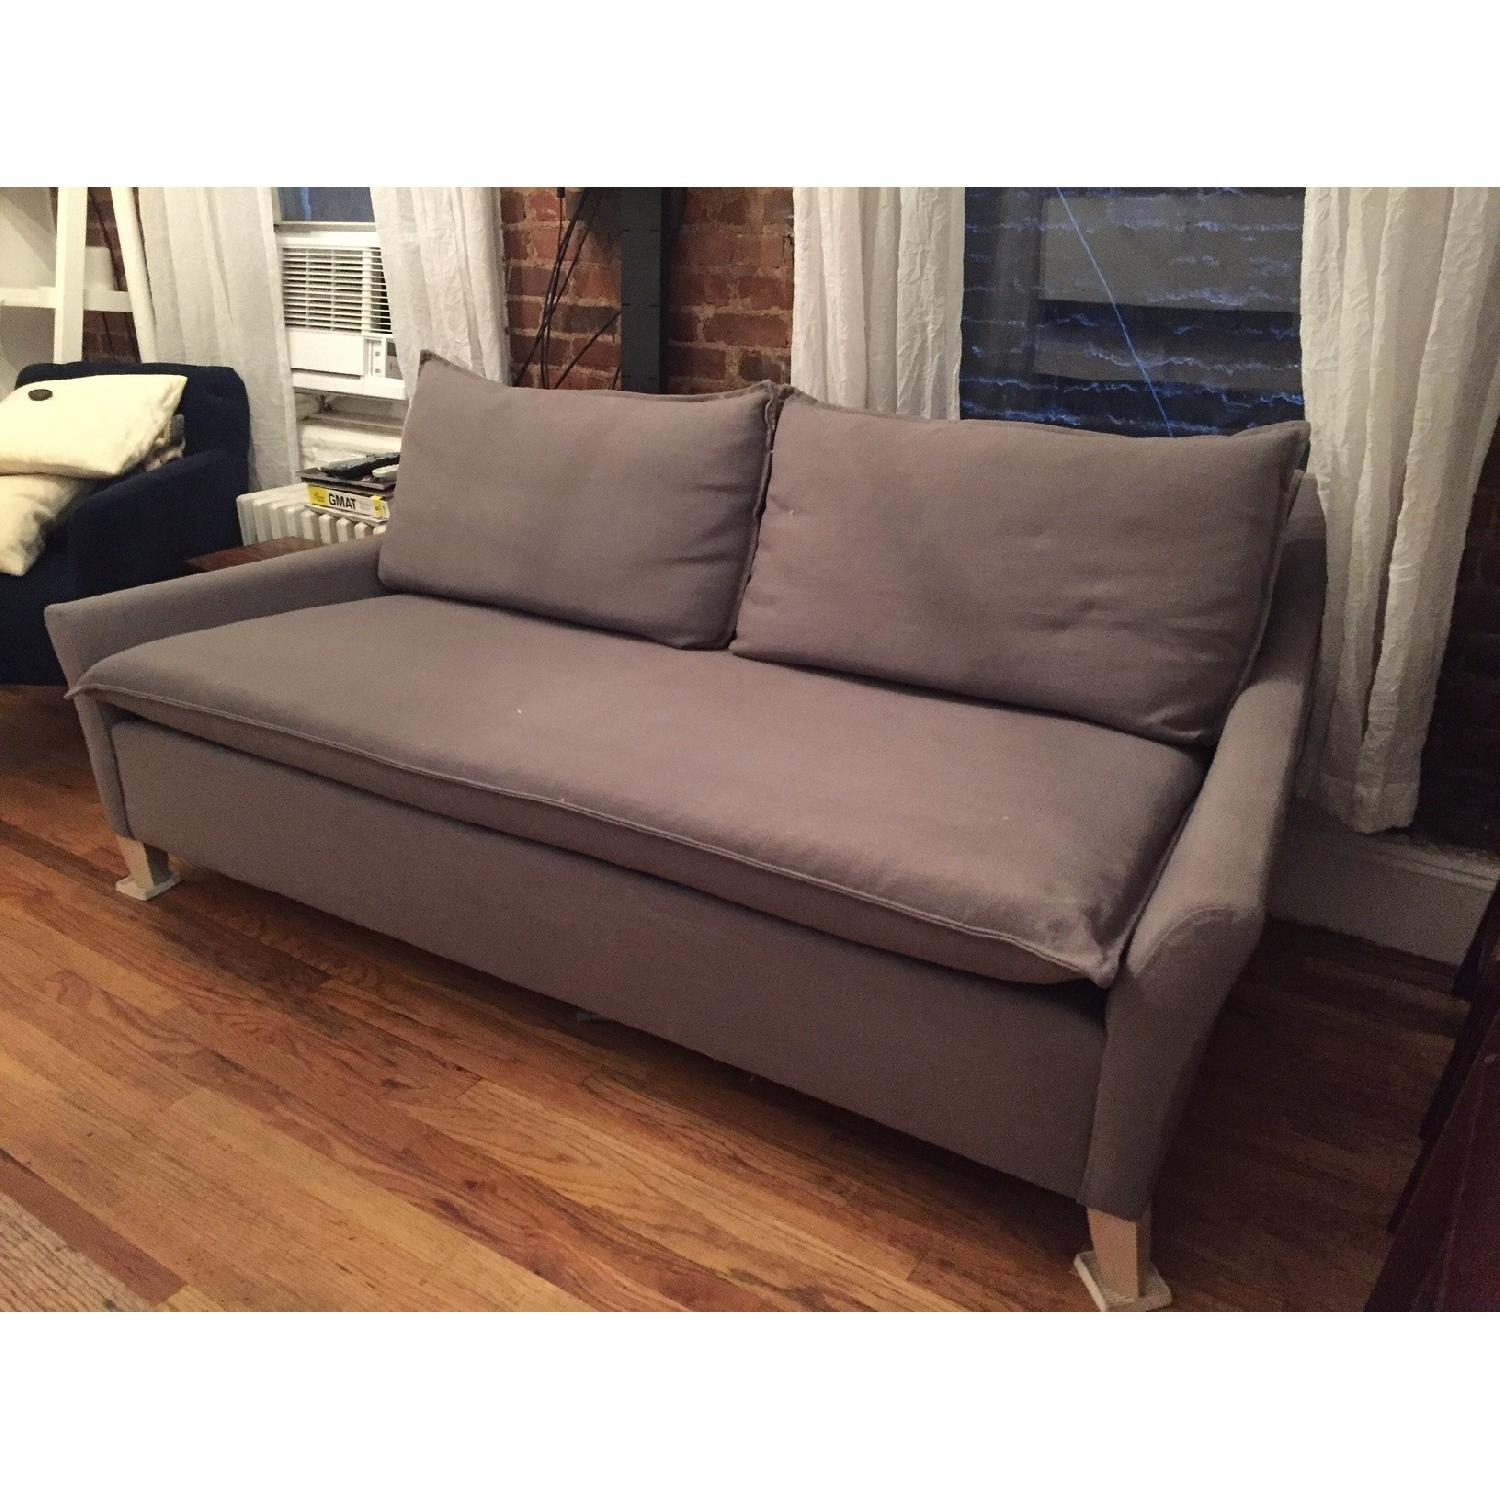 West Elm Bliss Down-Filled Sofa - image-2